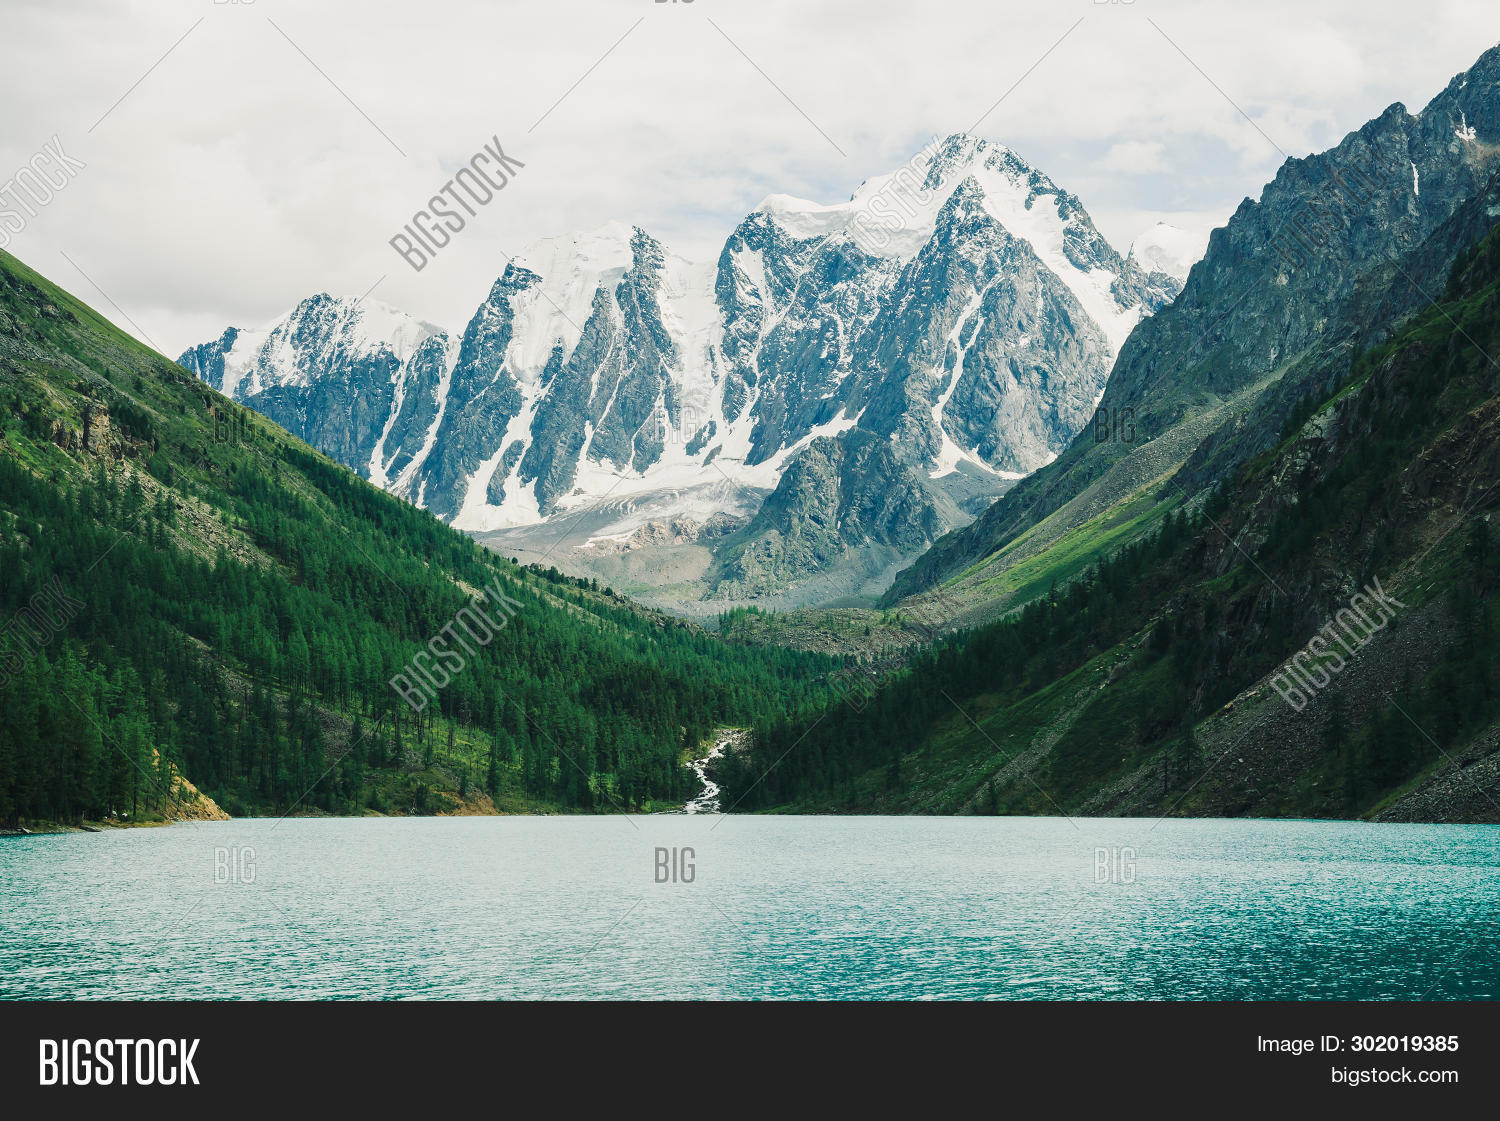 Alps,Altai,Canada,alpine,atmospheric,background,beautiful,bright,brook,canadian,cloud,cloudy,creek,fog,forest,freedom,glacier,high,highland,highly,idyllic,lake,landscape,majestic,minimalistic,mist,mountain,nature,outdoor,overcast,peak,range,ridge,rock,scenery,scenic,sky,snow,snowy,stream,summer,top,tourism,tranquility,travel,tree,view,water,white